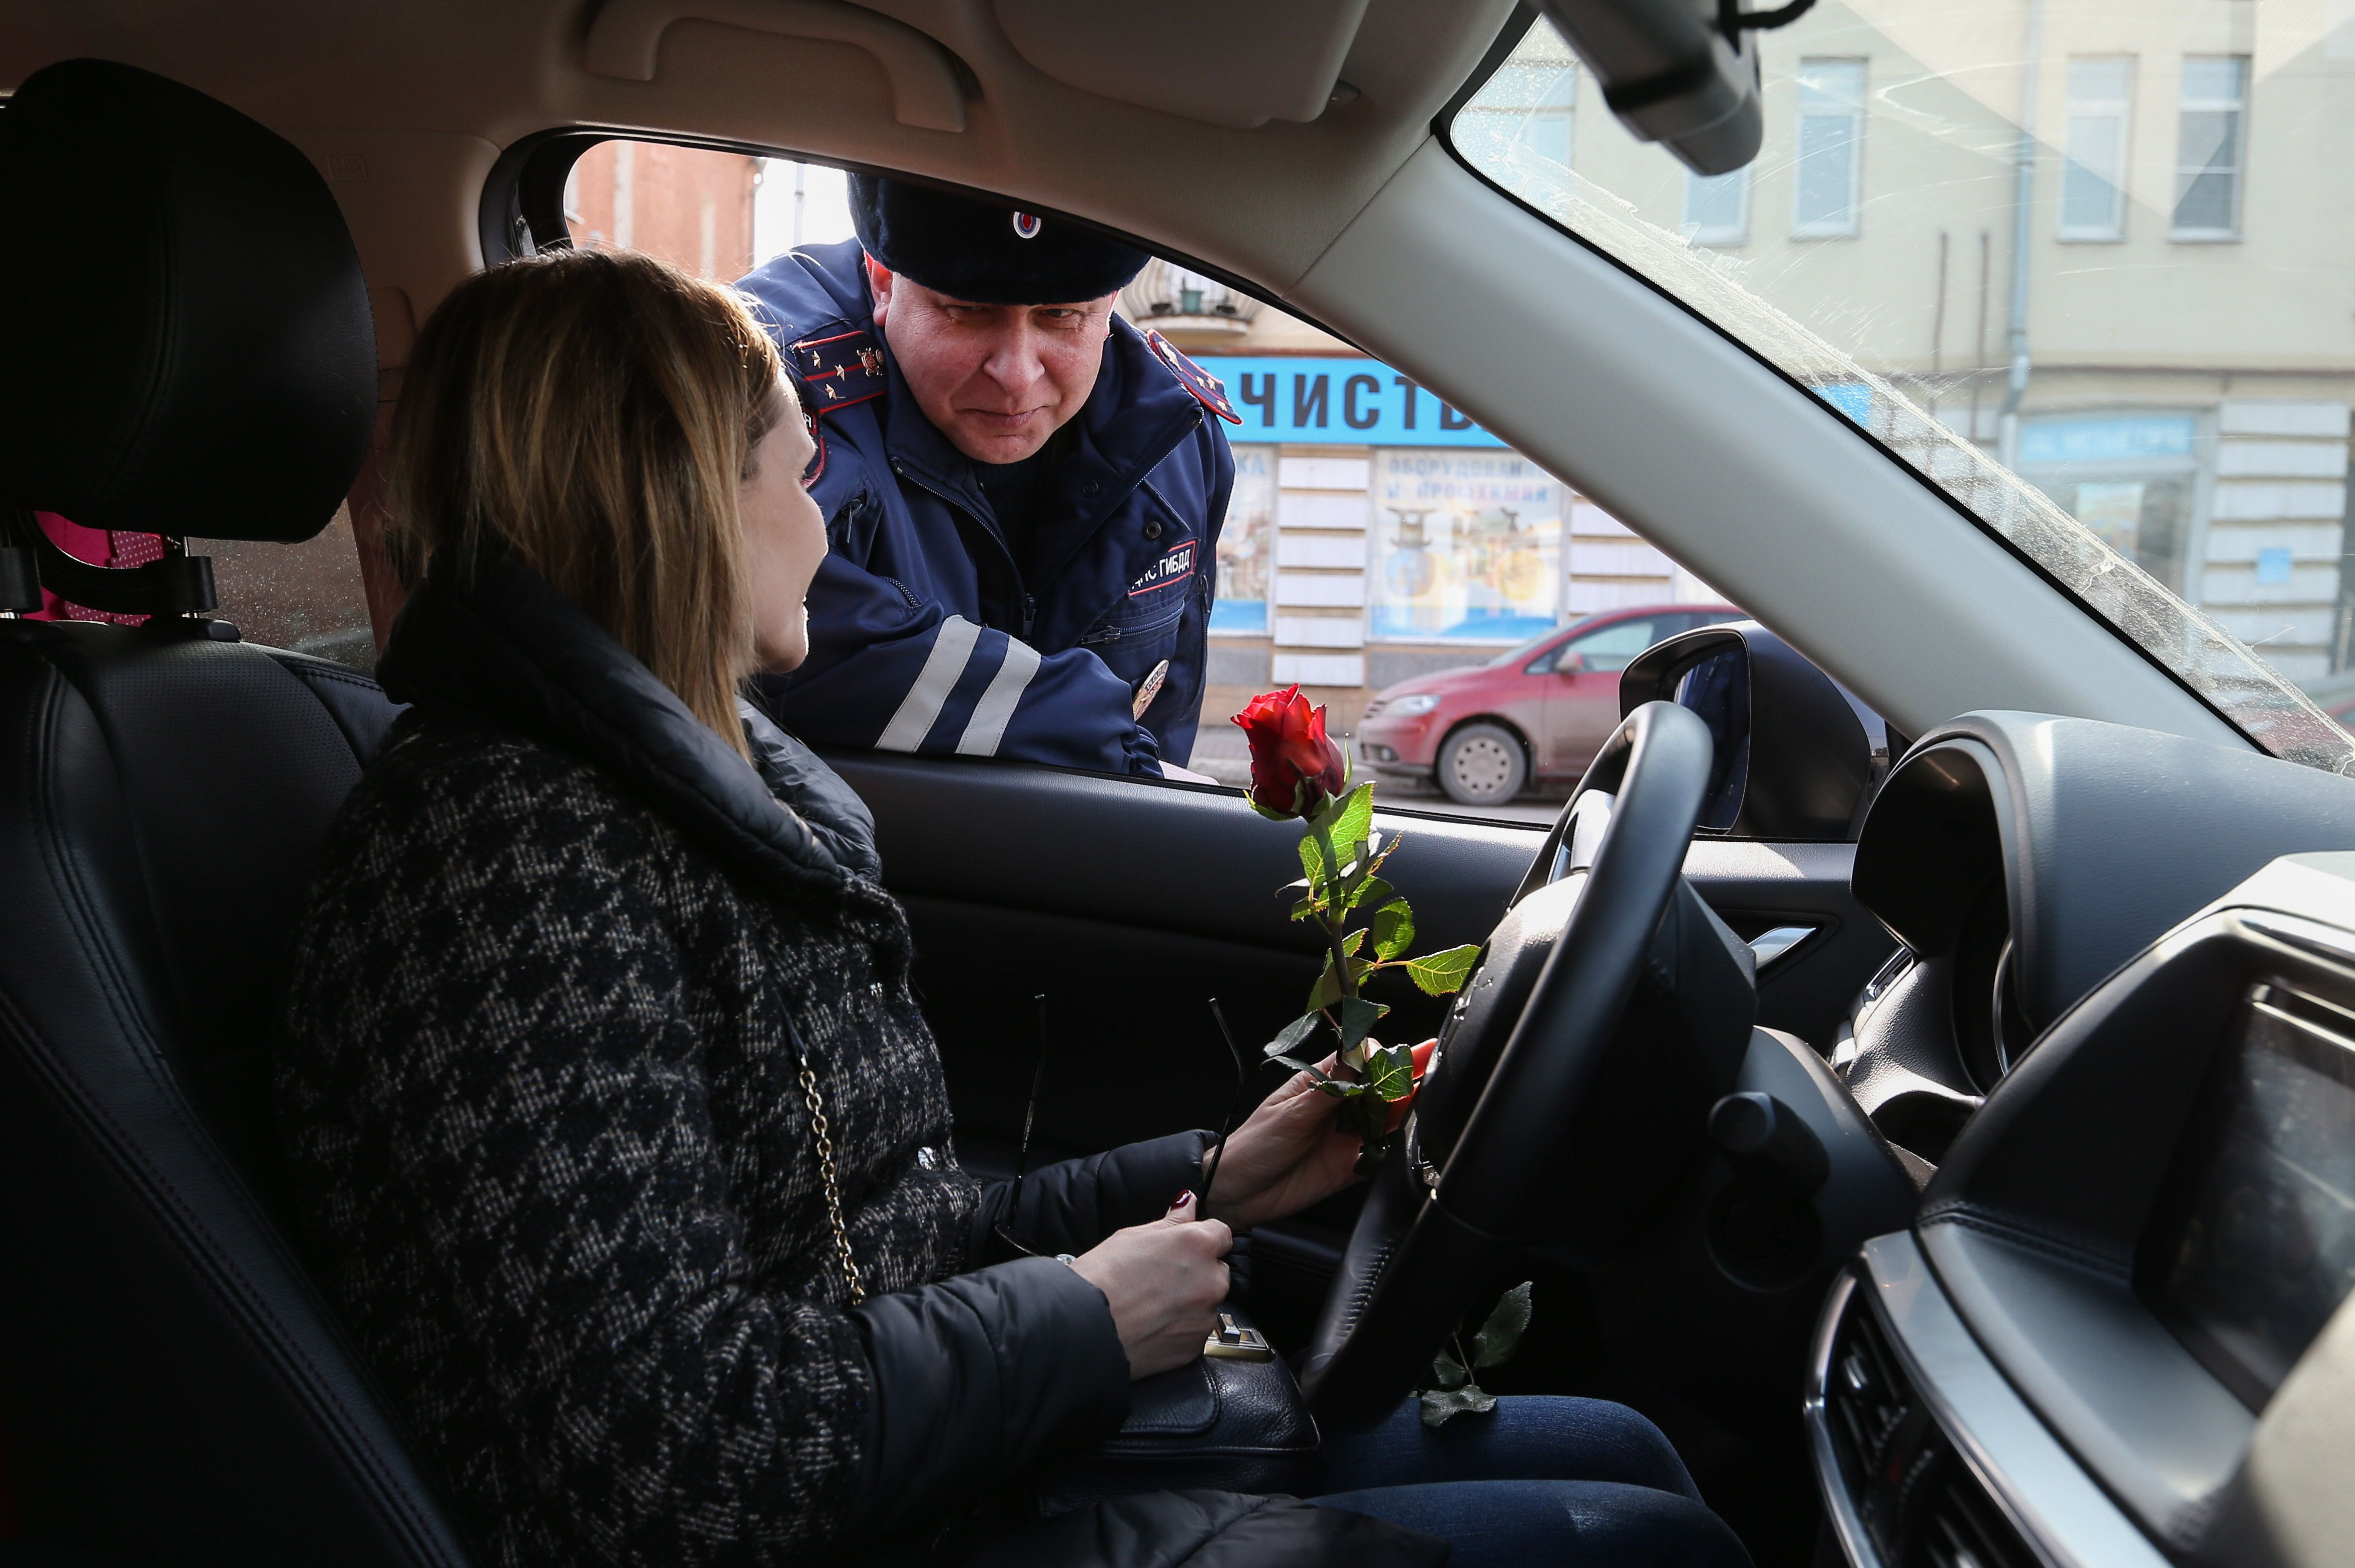 A traffic policeman congratulates a female driver on upcoming International Women's Day.